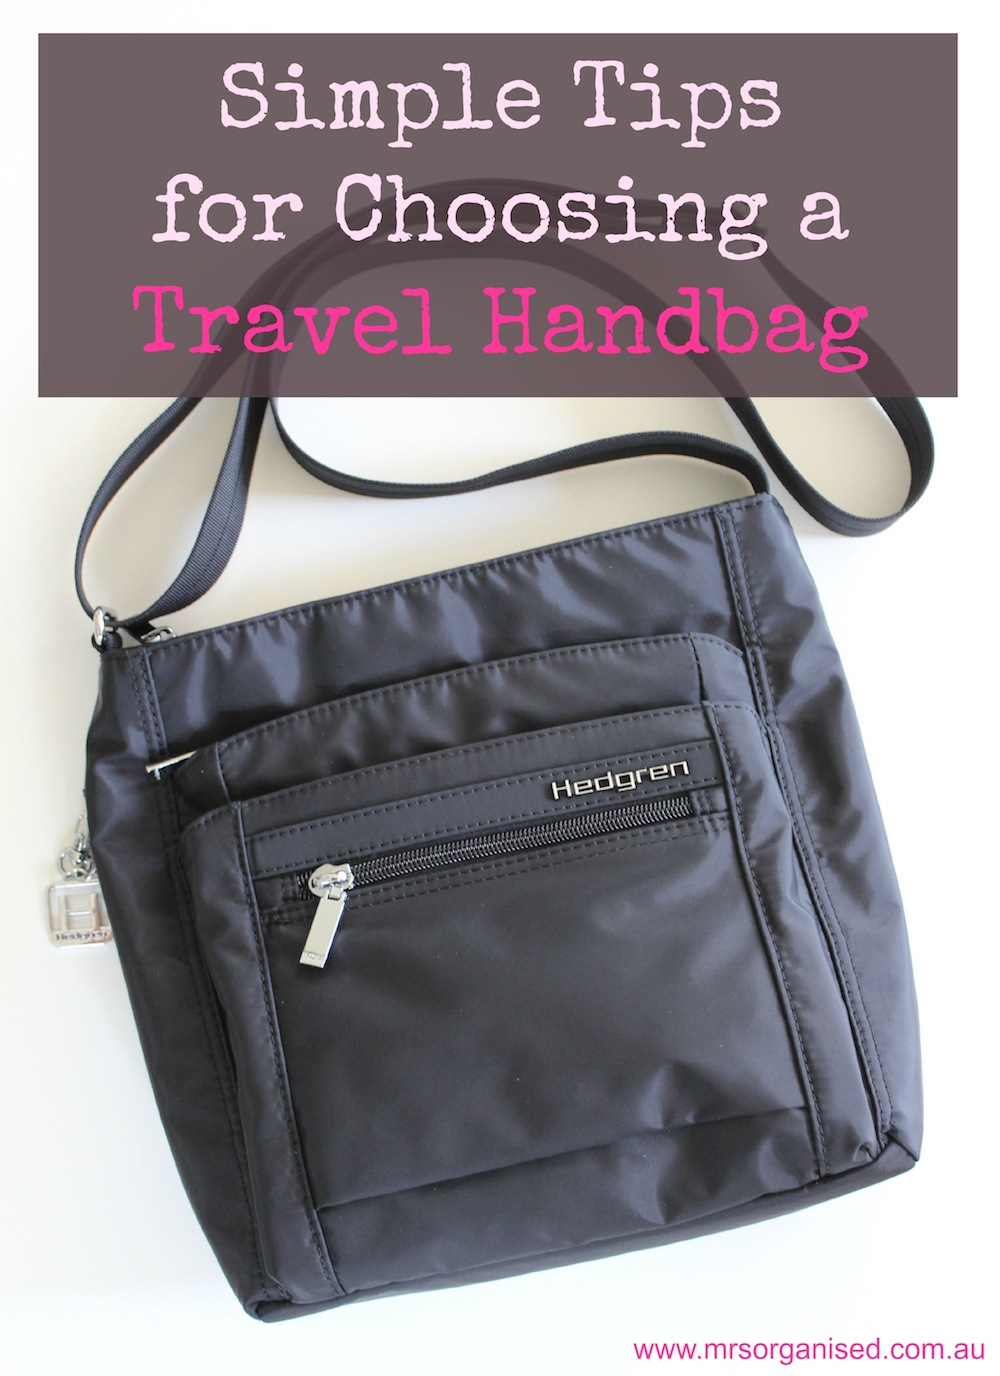 Simple Tips for Choosing a Travel Handbag 001